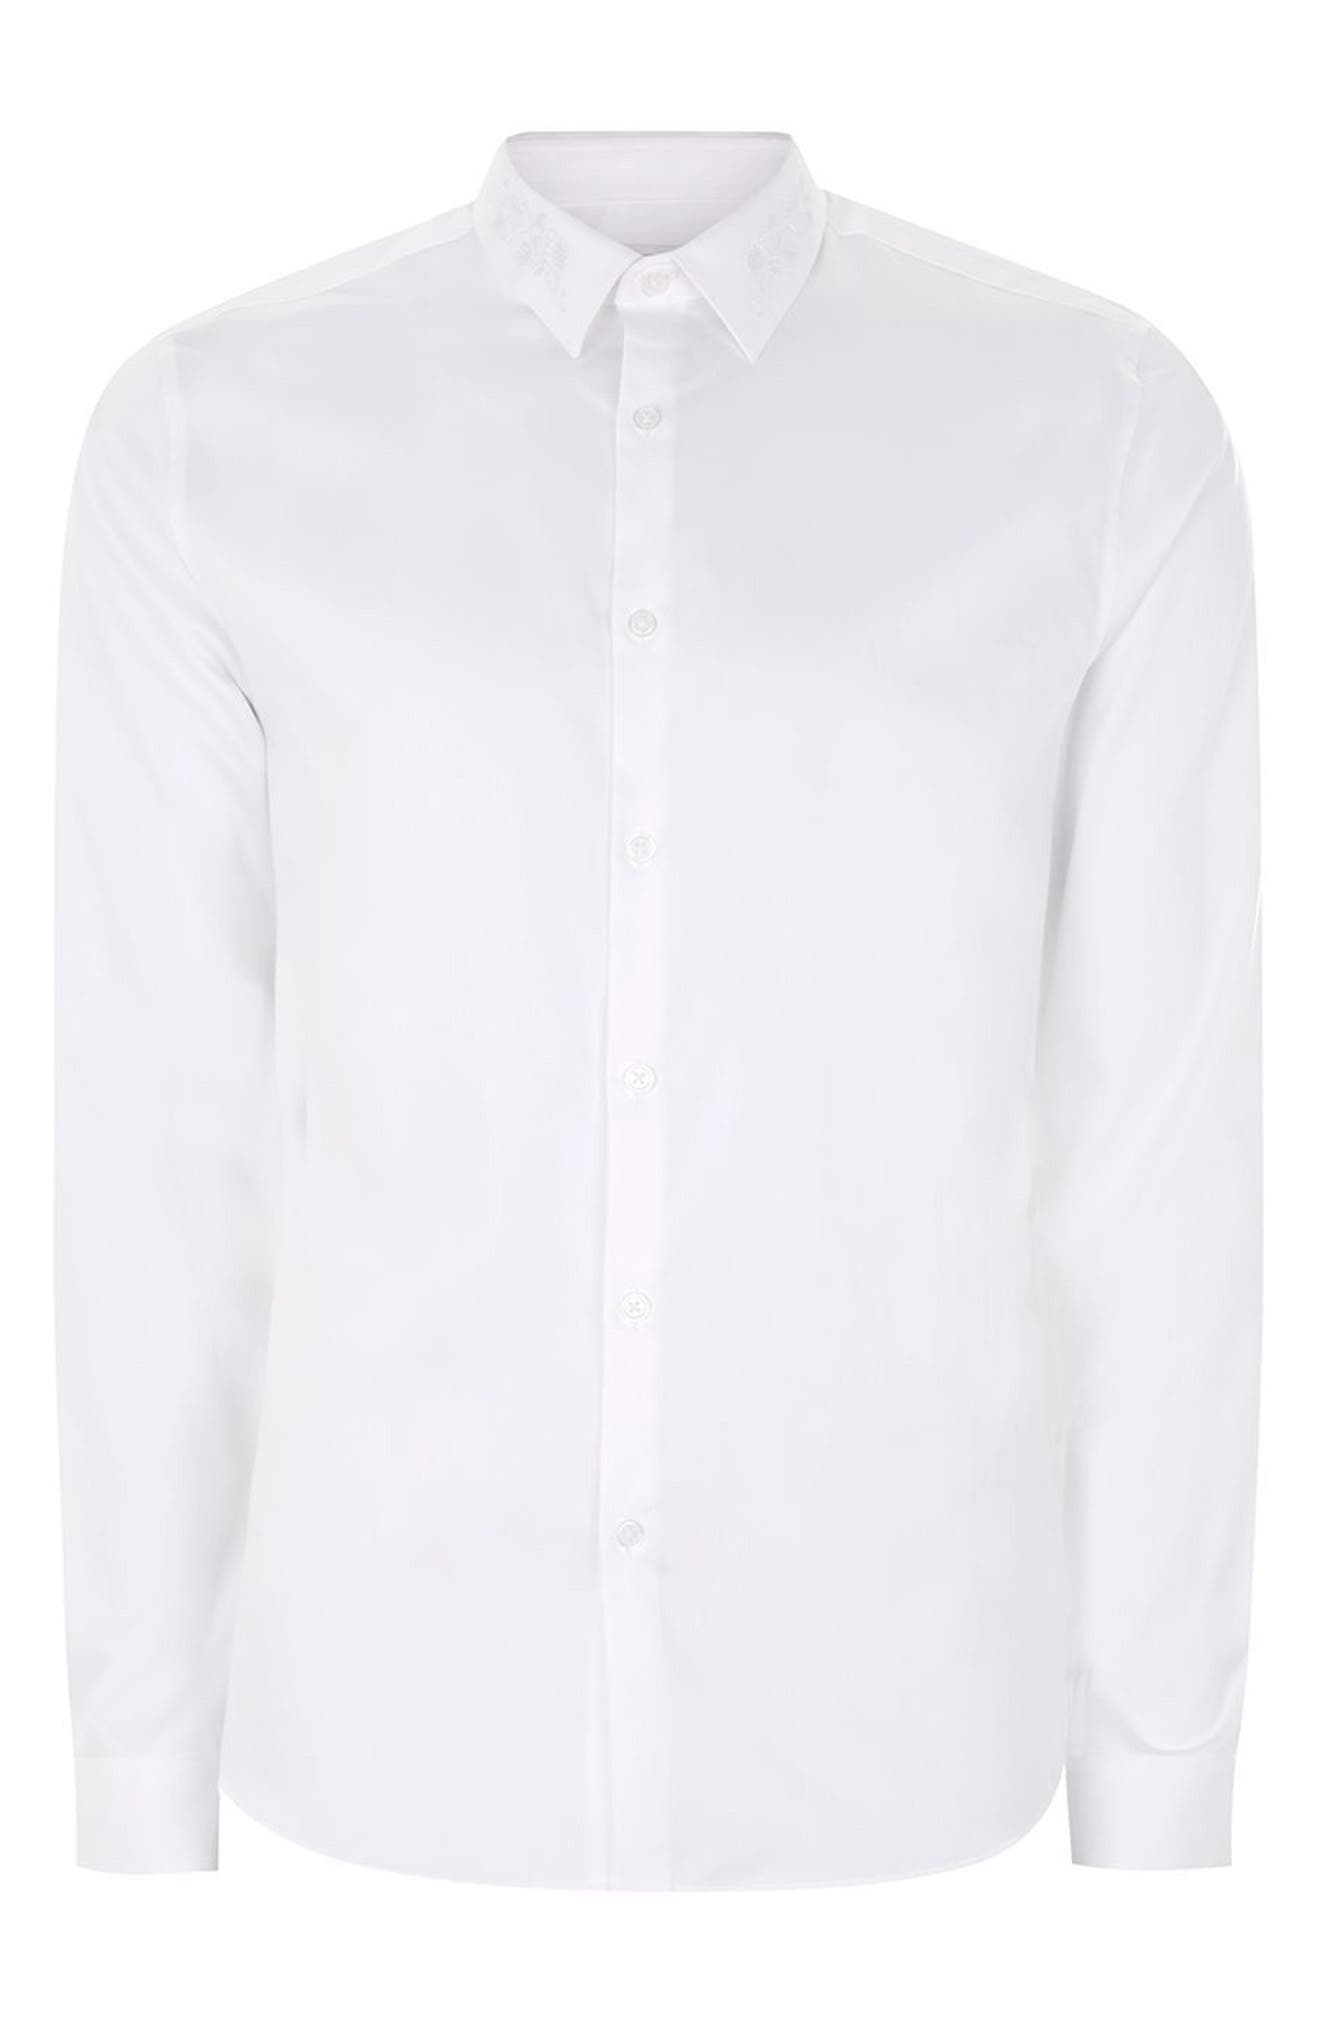 Slim Fit Embroidered Collar Dress Shirt,                             Alternate thumbnail 5, color,                             White